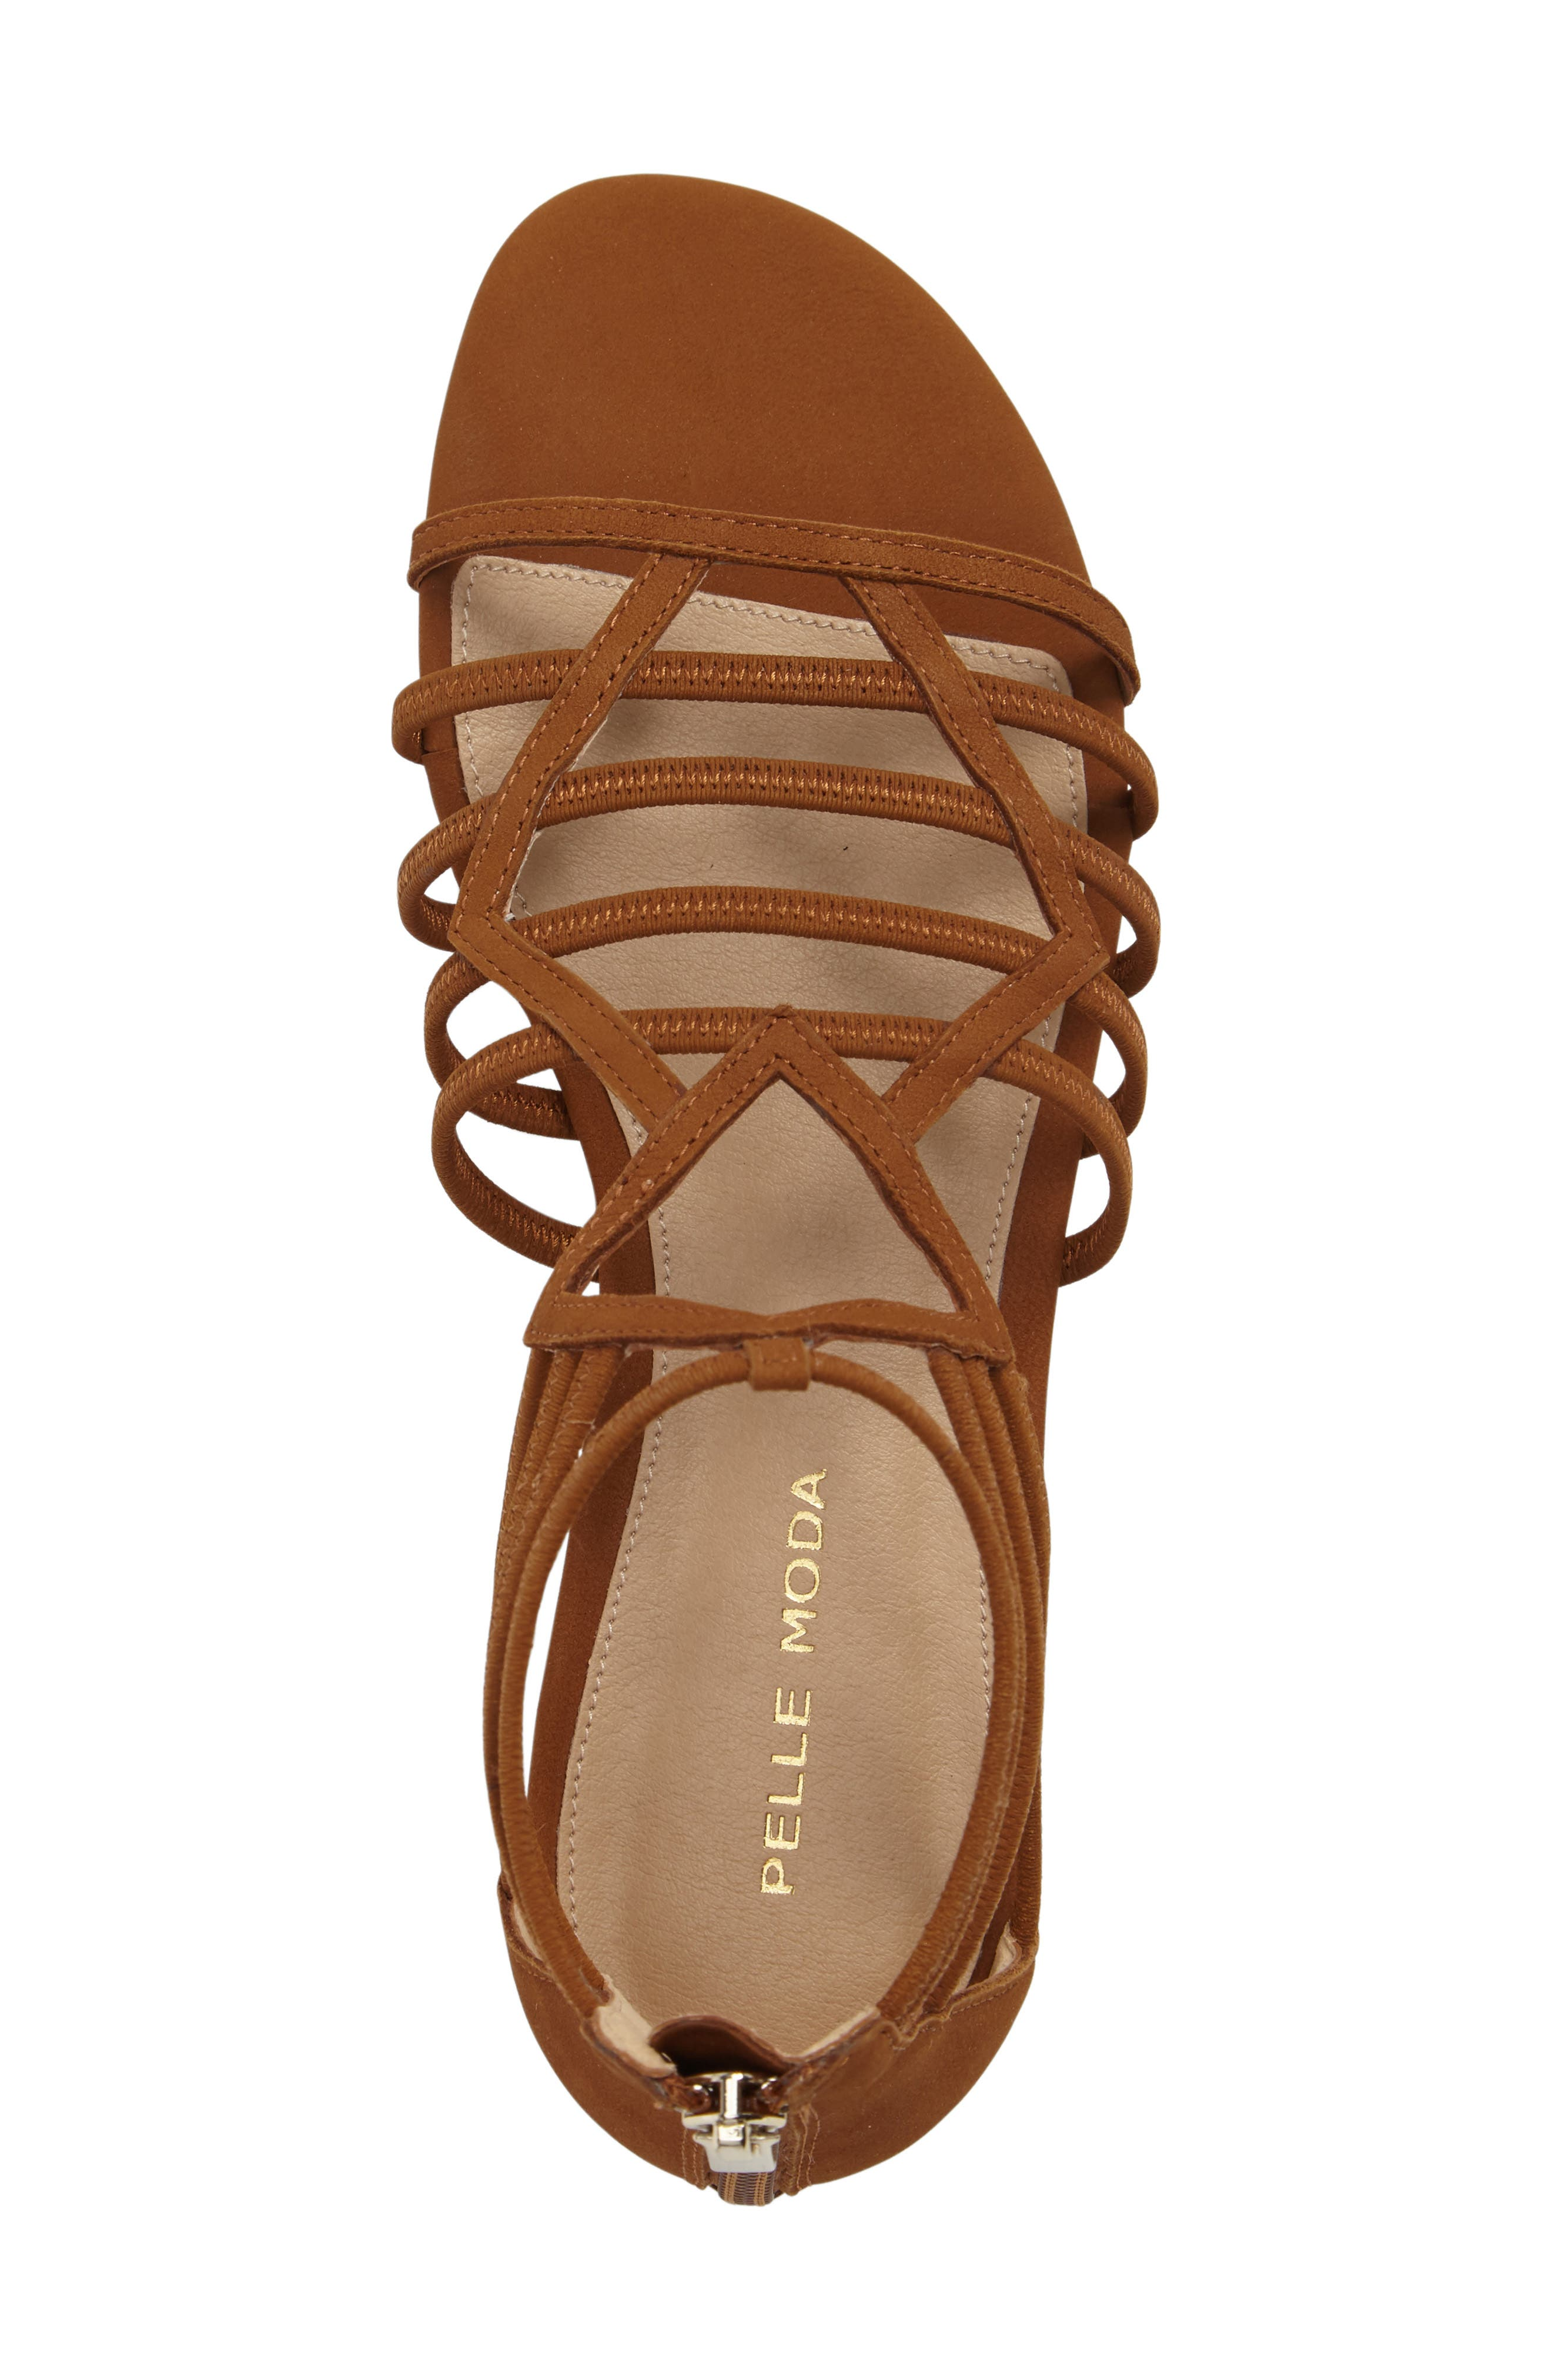 Brazil Strappy Sandal,                             Alternate thumbnail 5, color,                             Luggage Leather